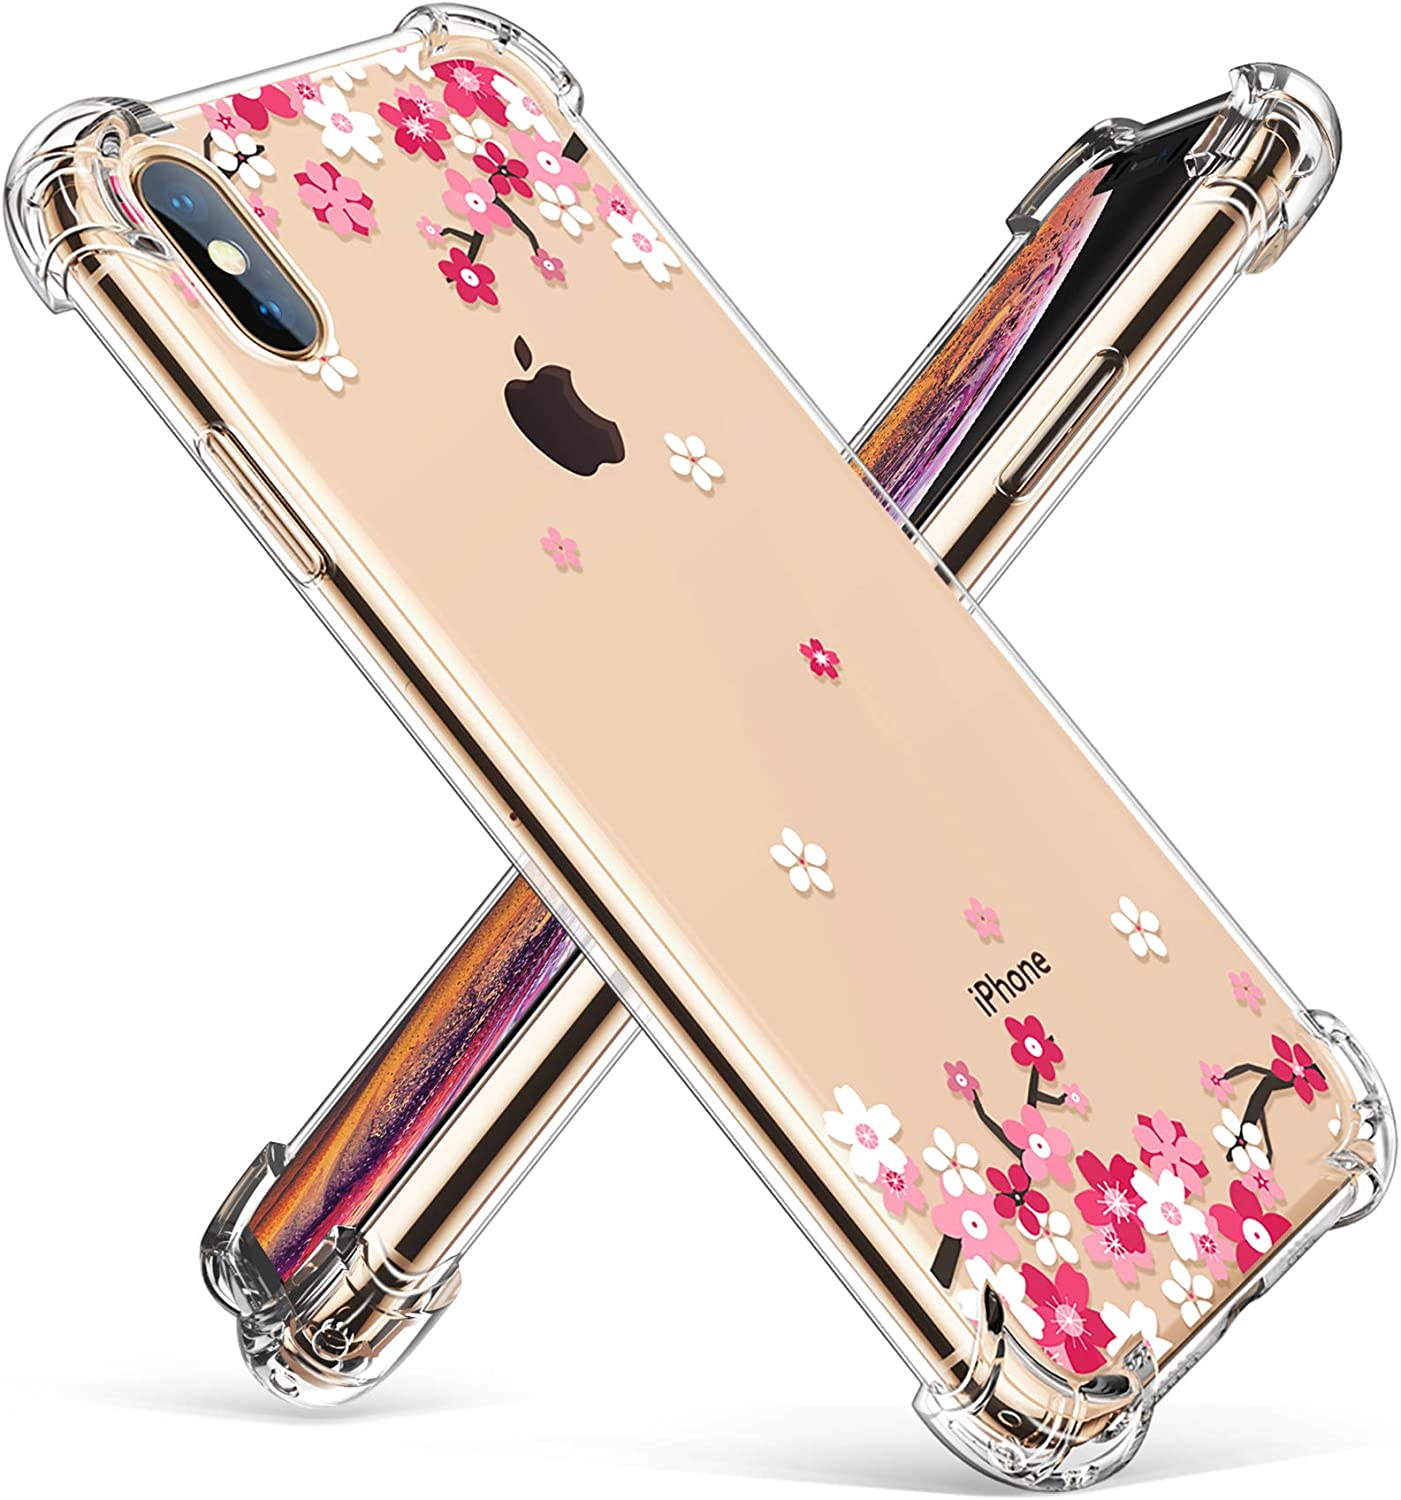 GVIEWIN Compatible with iPhone Xs/X Case, Clear Flower Pattern Design Soft & Flexible TPU Thin Shockproof Transparent Floral Cover Cases 5.8 Inch (Peach Blossom/Pink)